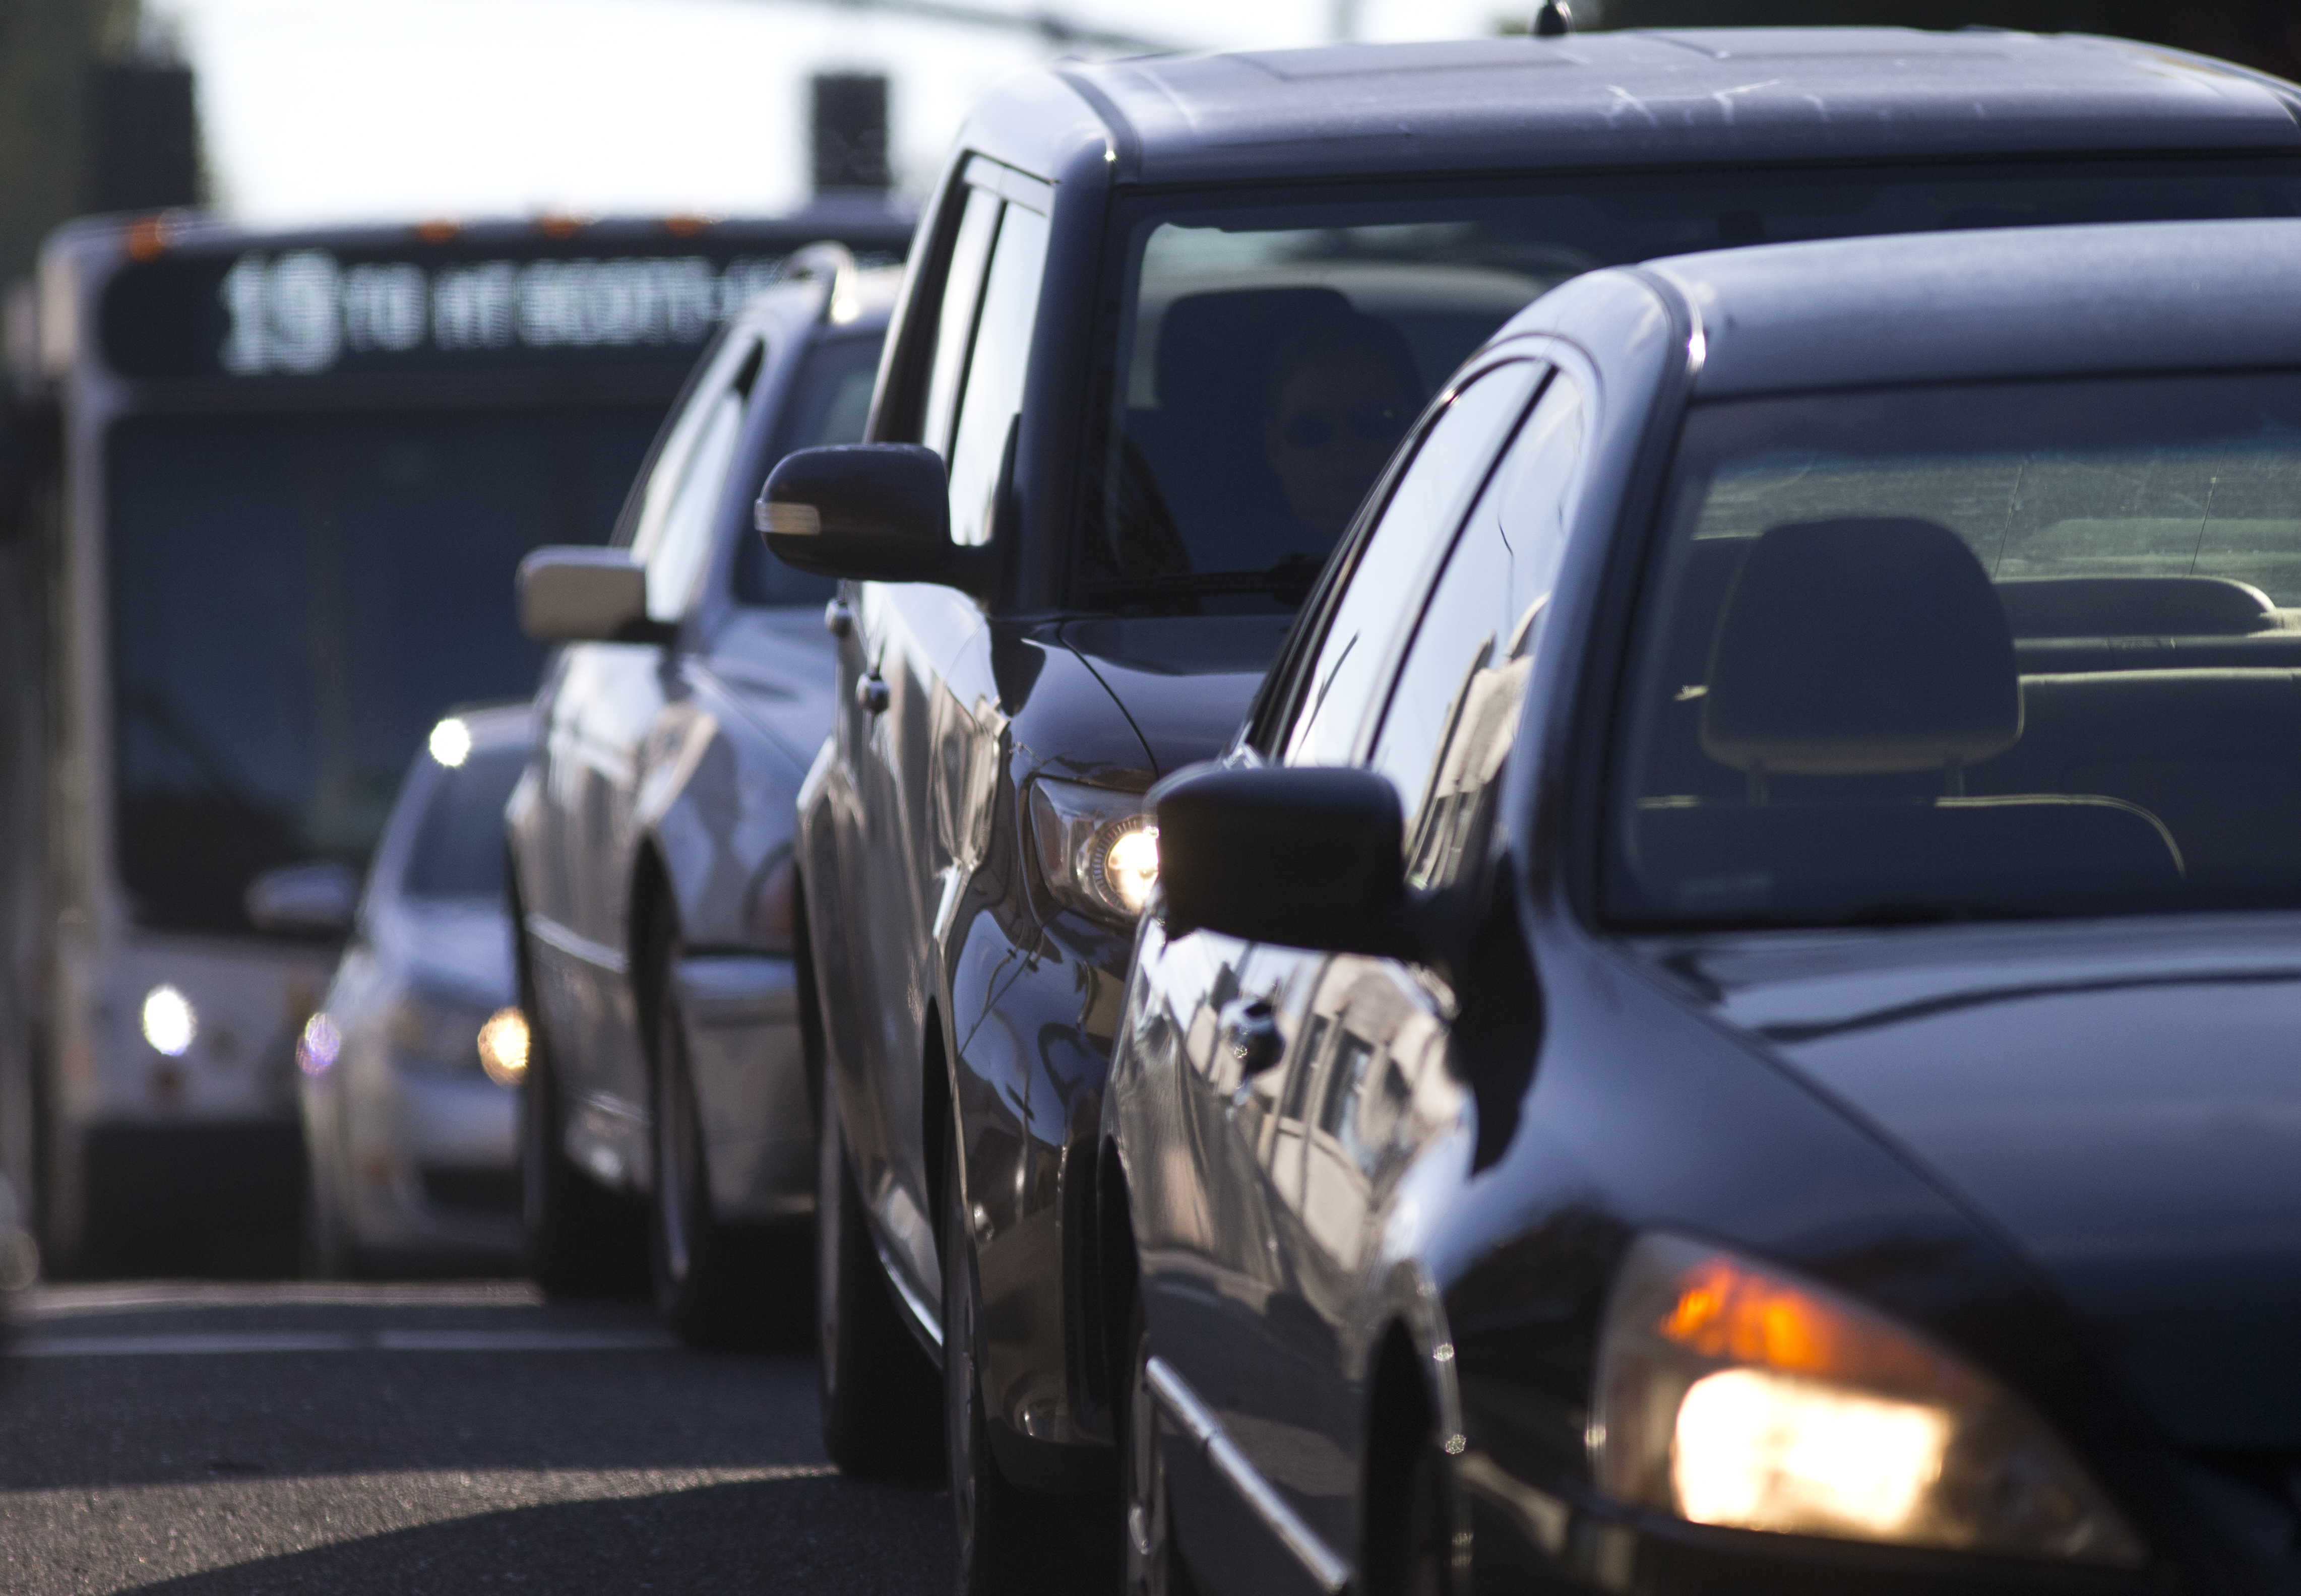 5 options for reducing car insurance costs if you're driving less amid the  coronavirus pandemic - oregonlive.com